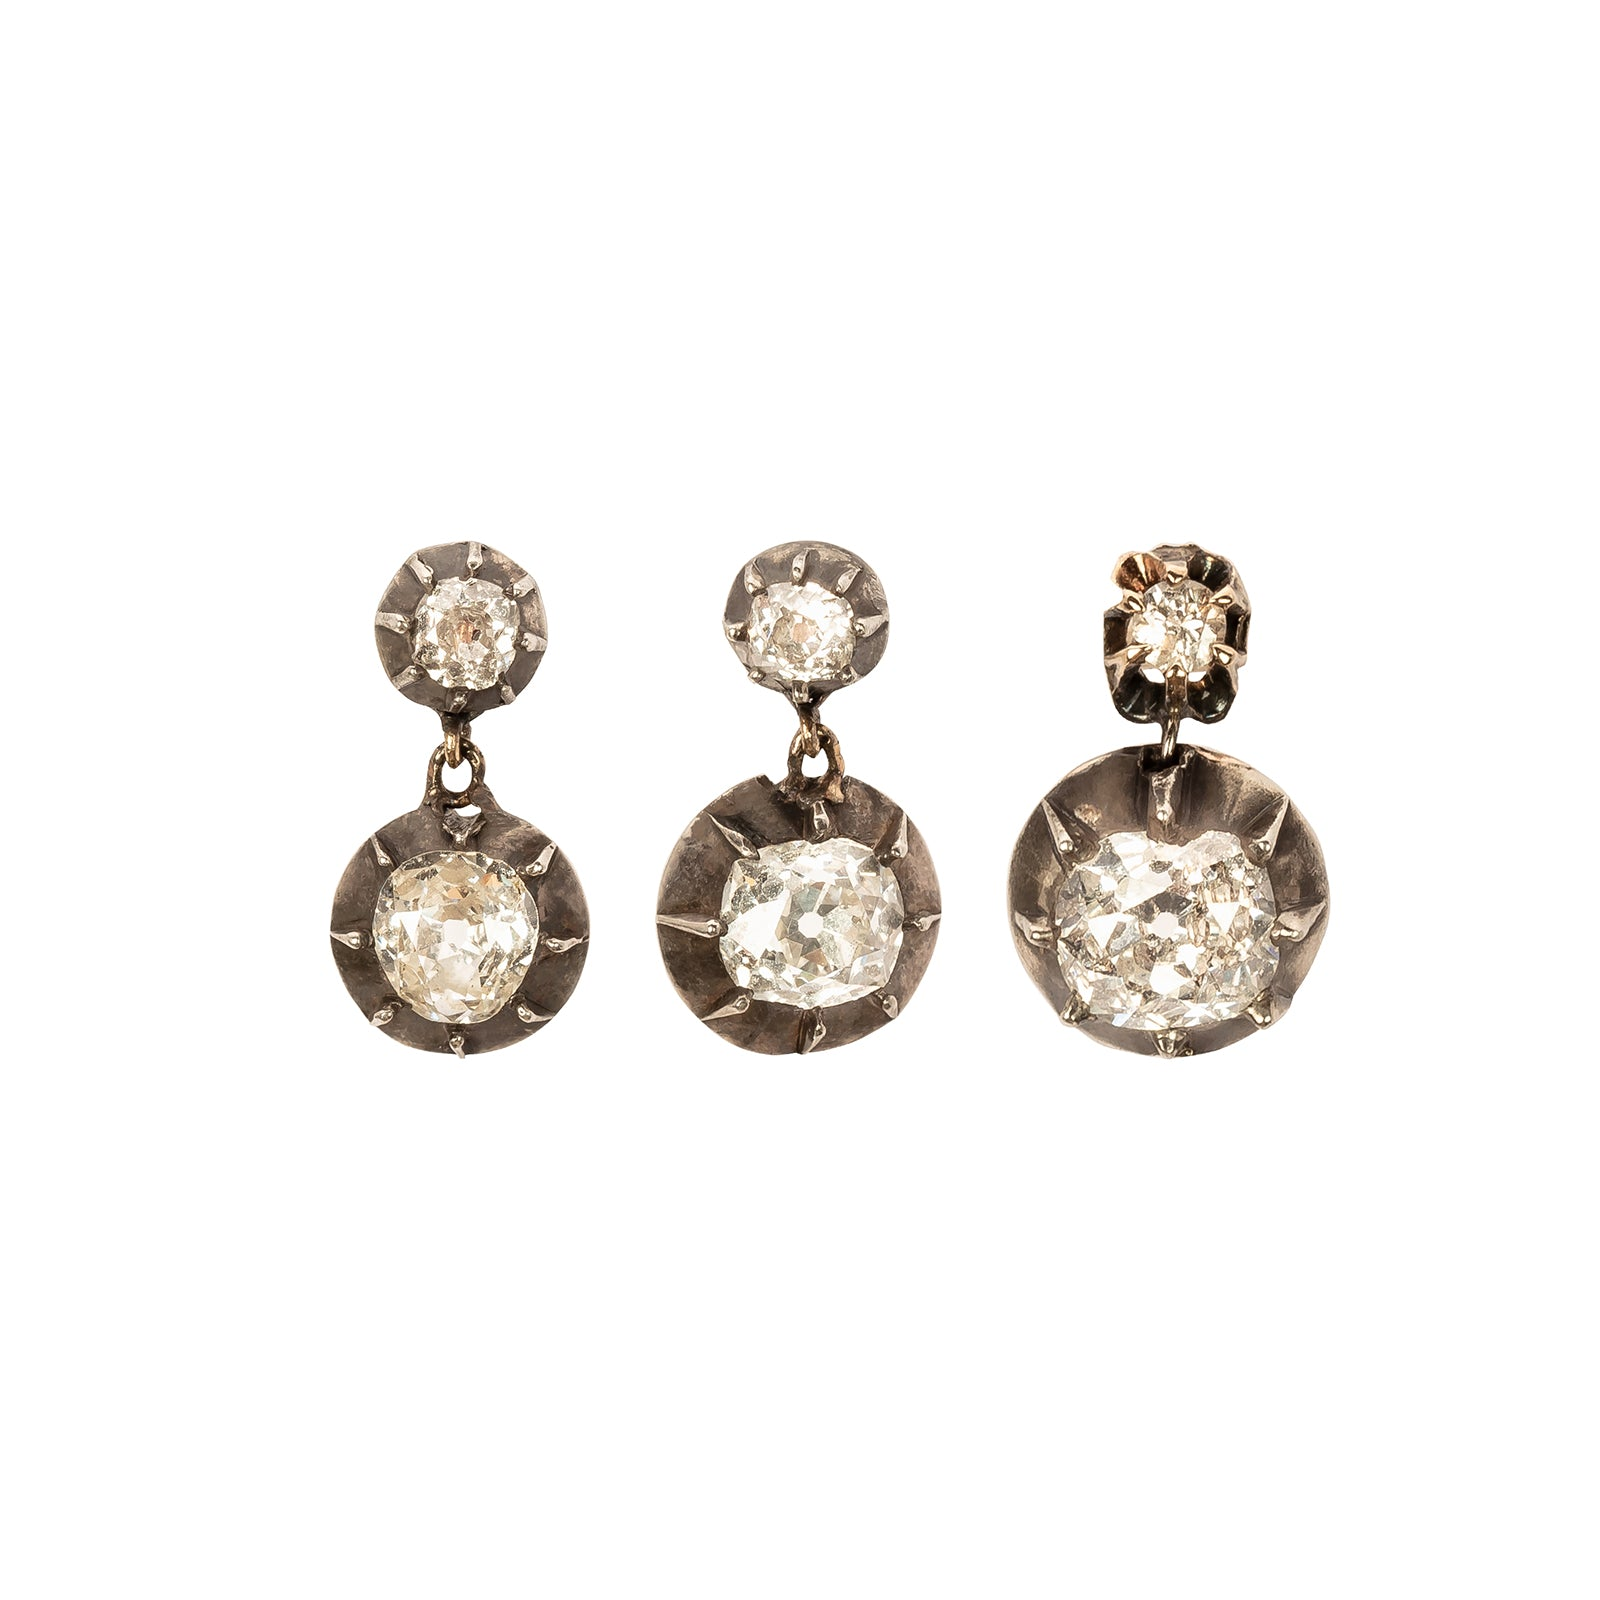 Jenna Blake Set of Three Old Mine Cut Diamond Earrings - Earrings - Broken English Jewelry